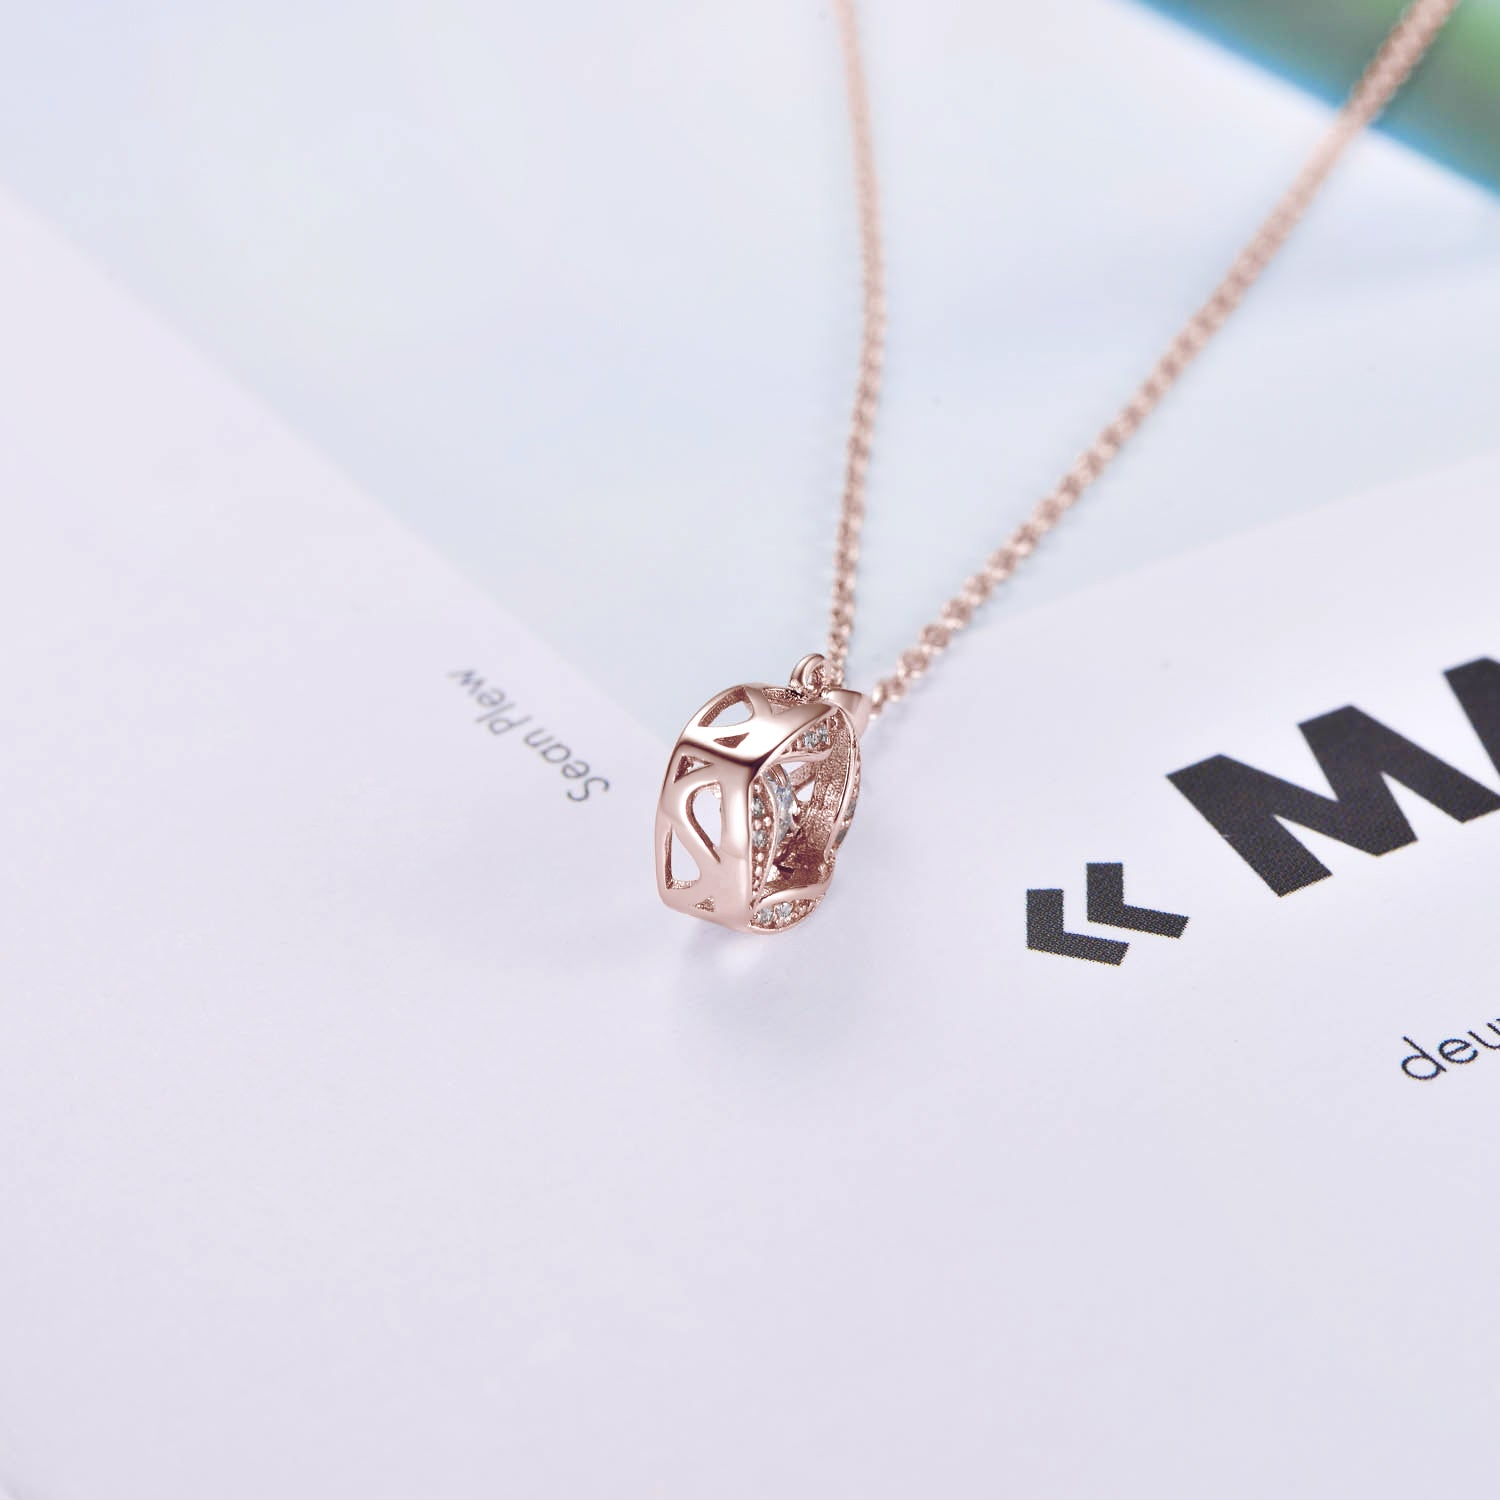 Zirconia Flower Necklace Fashion Jewelry Rose Gold Plated Cubic 925 Sterling Silver Pendant Necklace